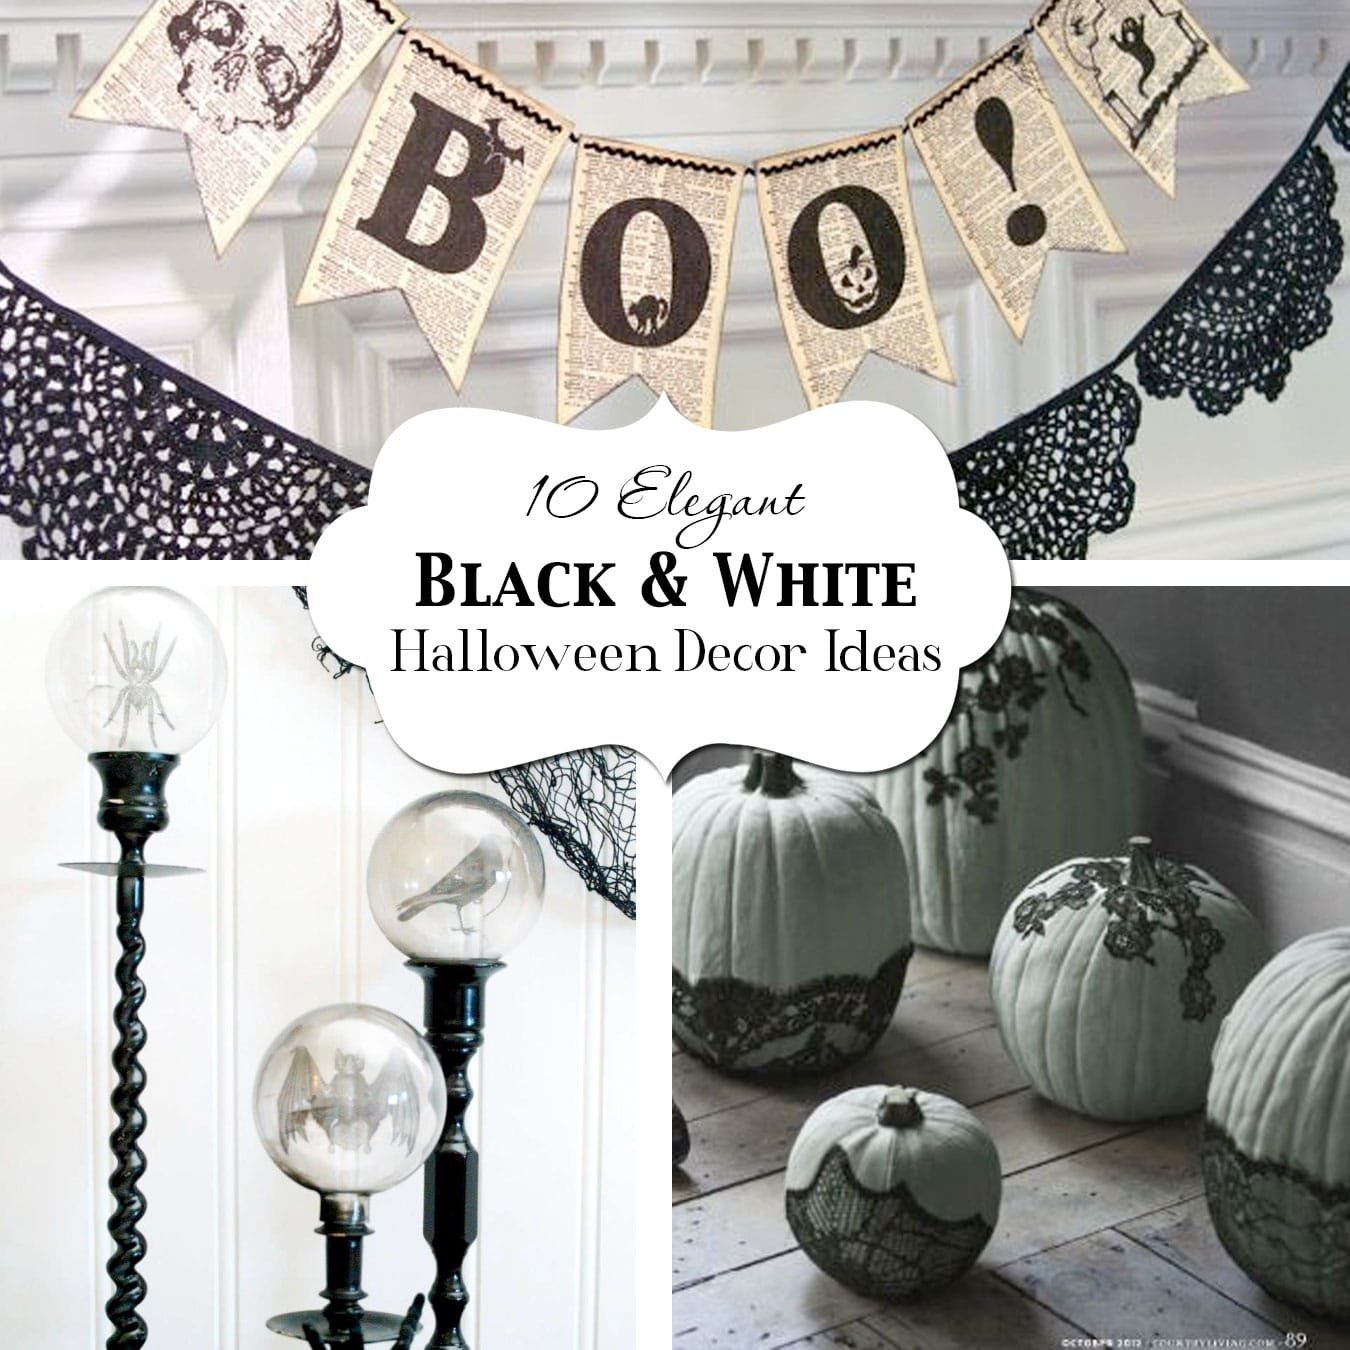 10 Elegant Black & White Halloween Decor Ideas